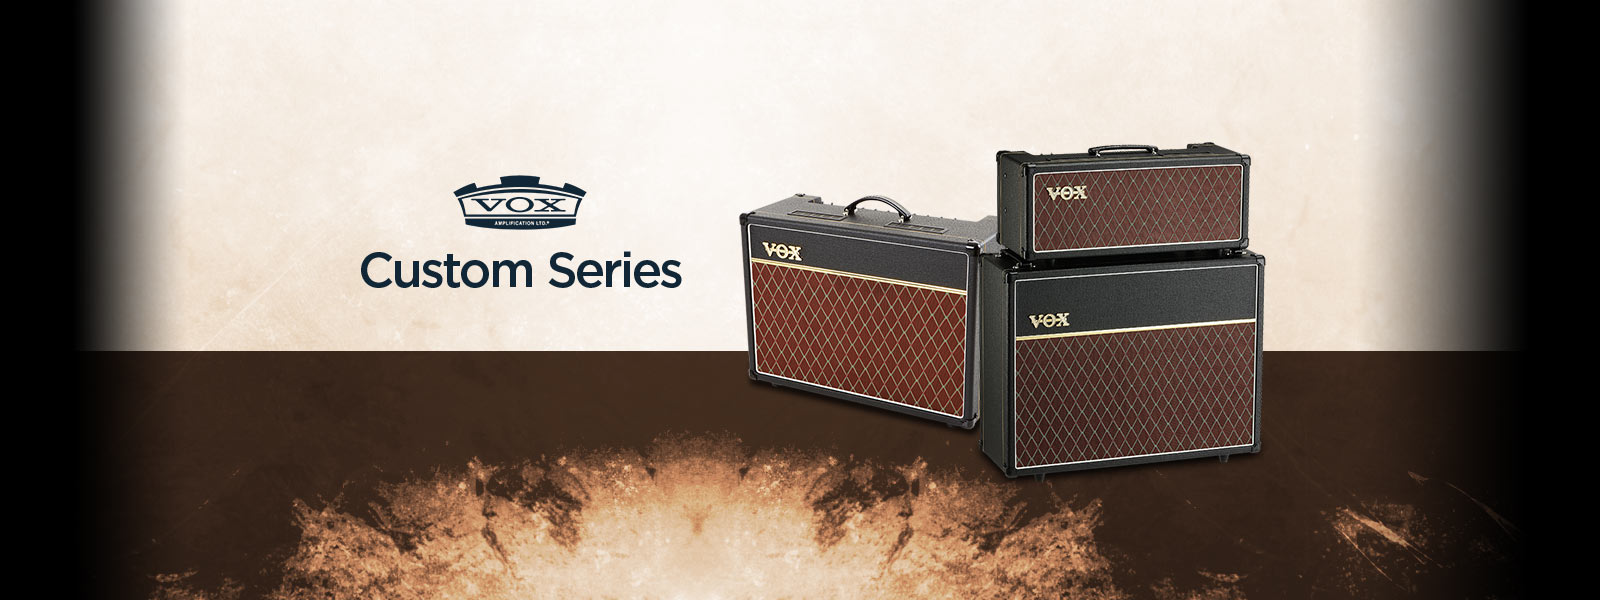 VOX Custom Series  Amplifiers